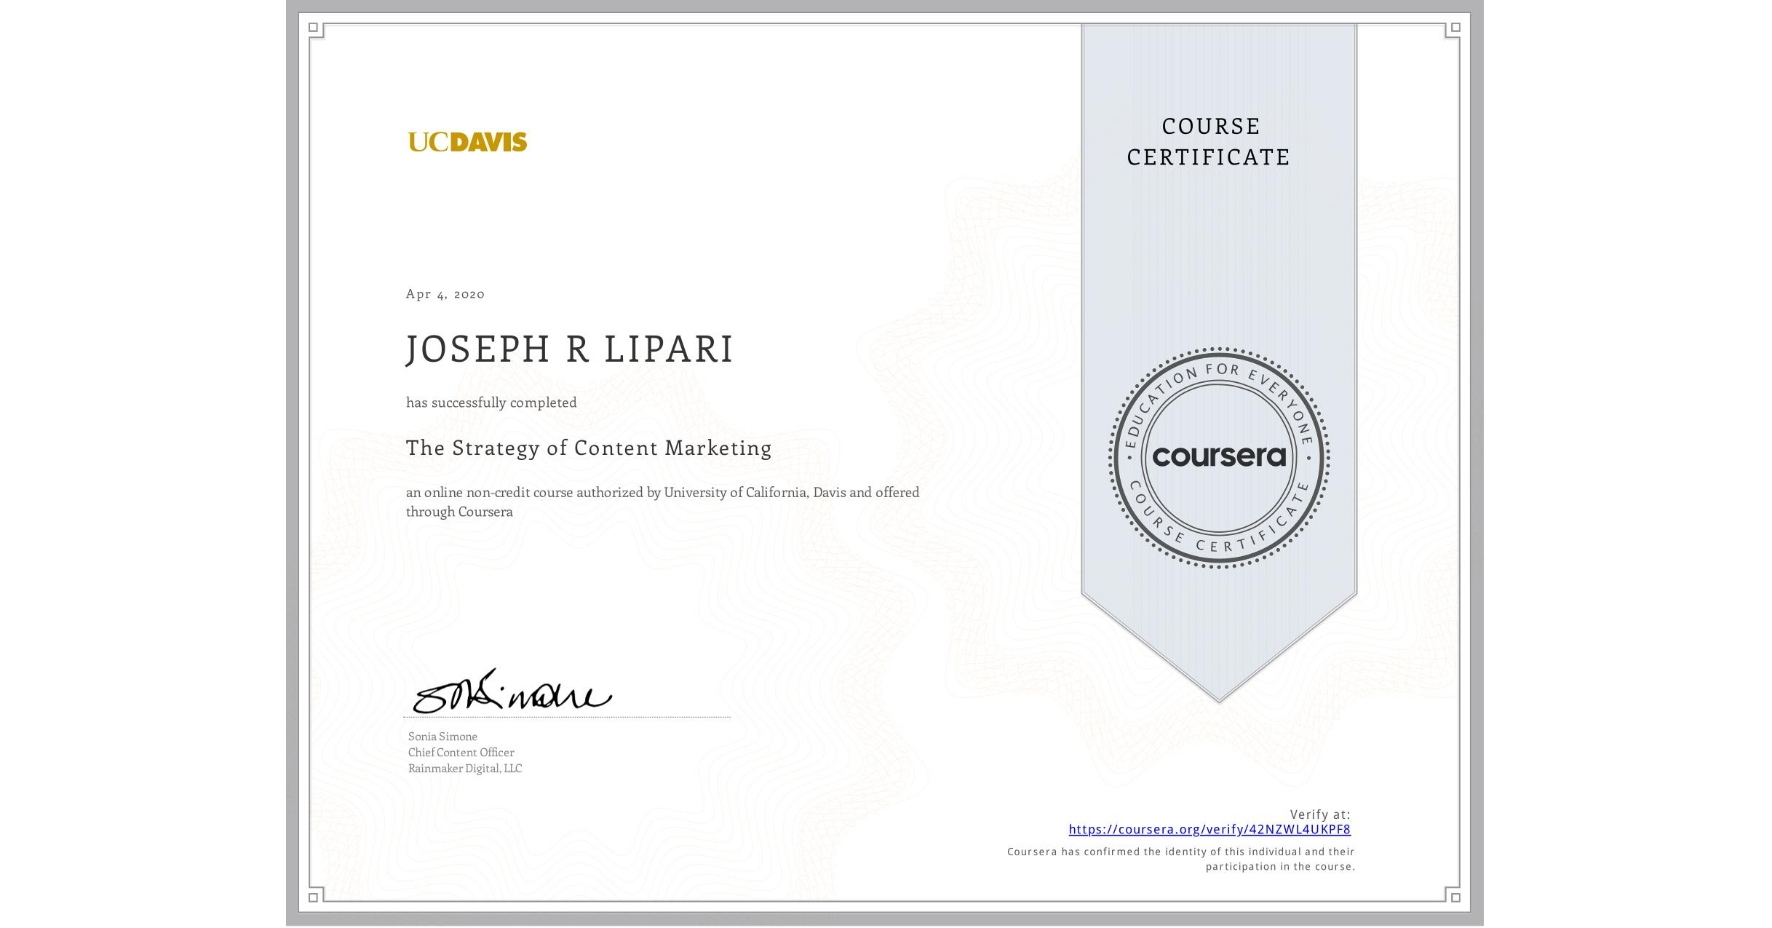 View certificate for JOSEPH R  LIPARI, The Strategy of Content Marketing, an online non-credit course authorized by University of California, Davis and offered through Coursera